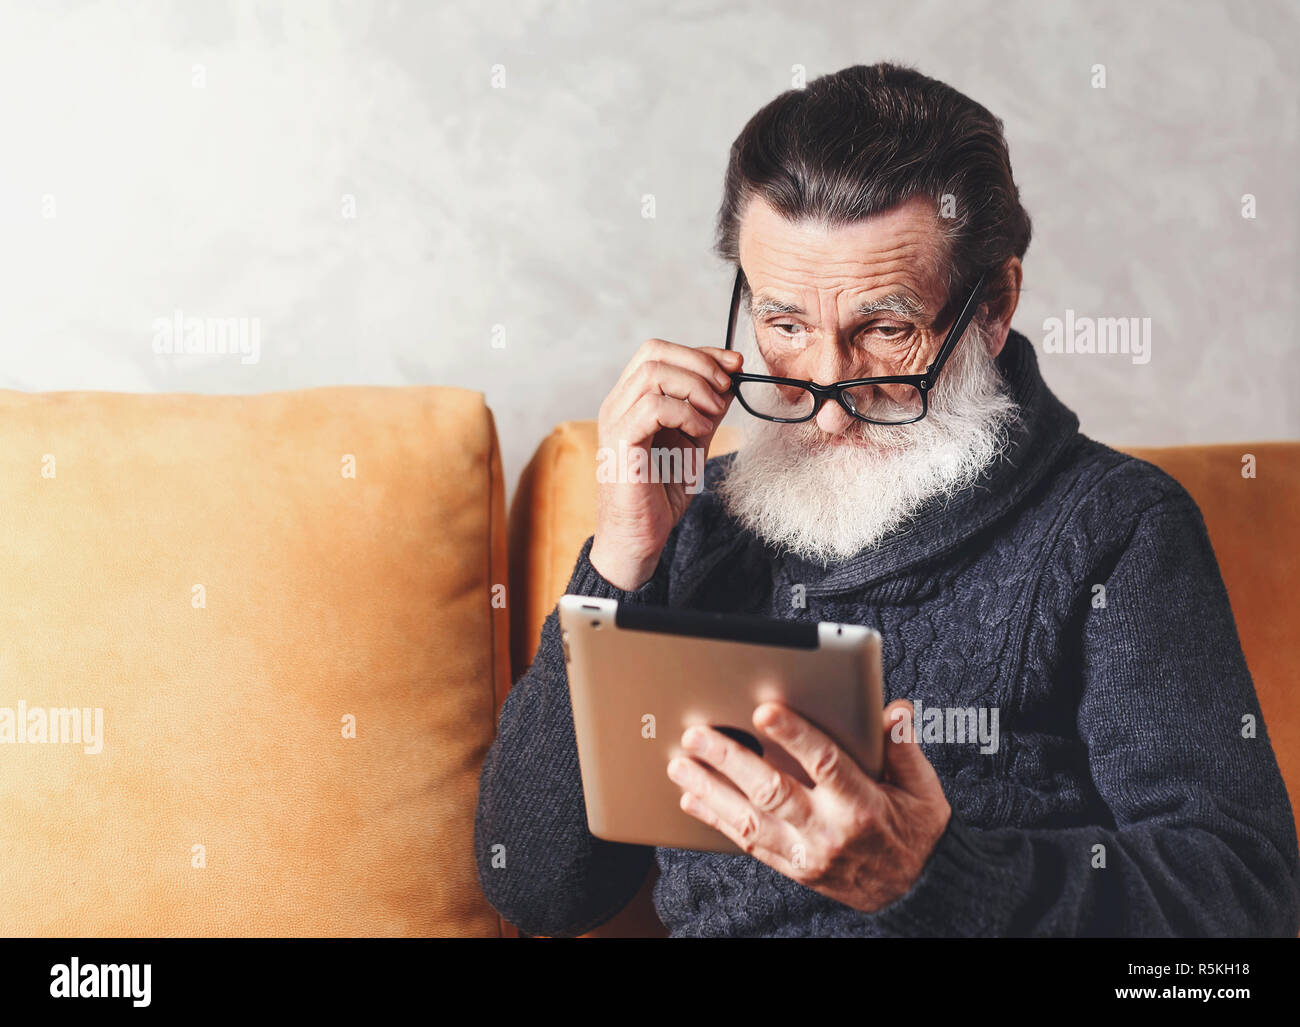 Clever senior bearded man in glasses wearing grey pullover reading electronic book on the digital tablet while sitting on a yellow sofa in his light living room, he looking over his glasses Stock Photo